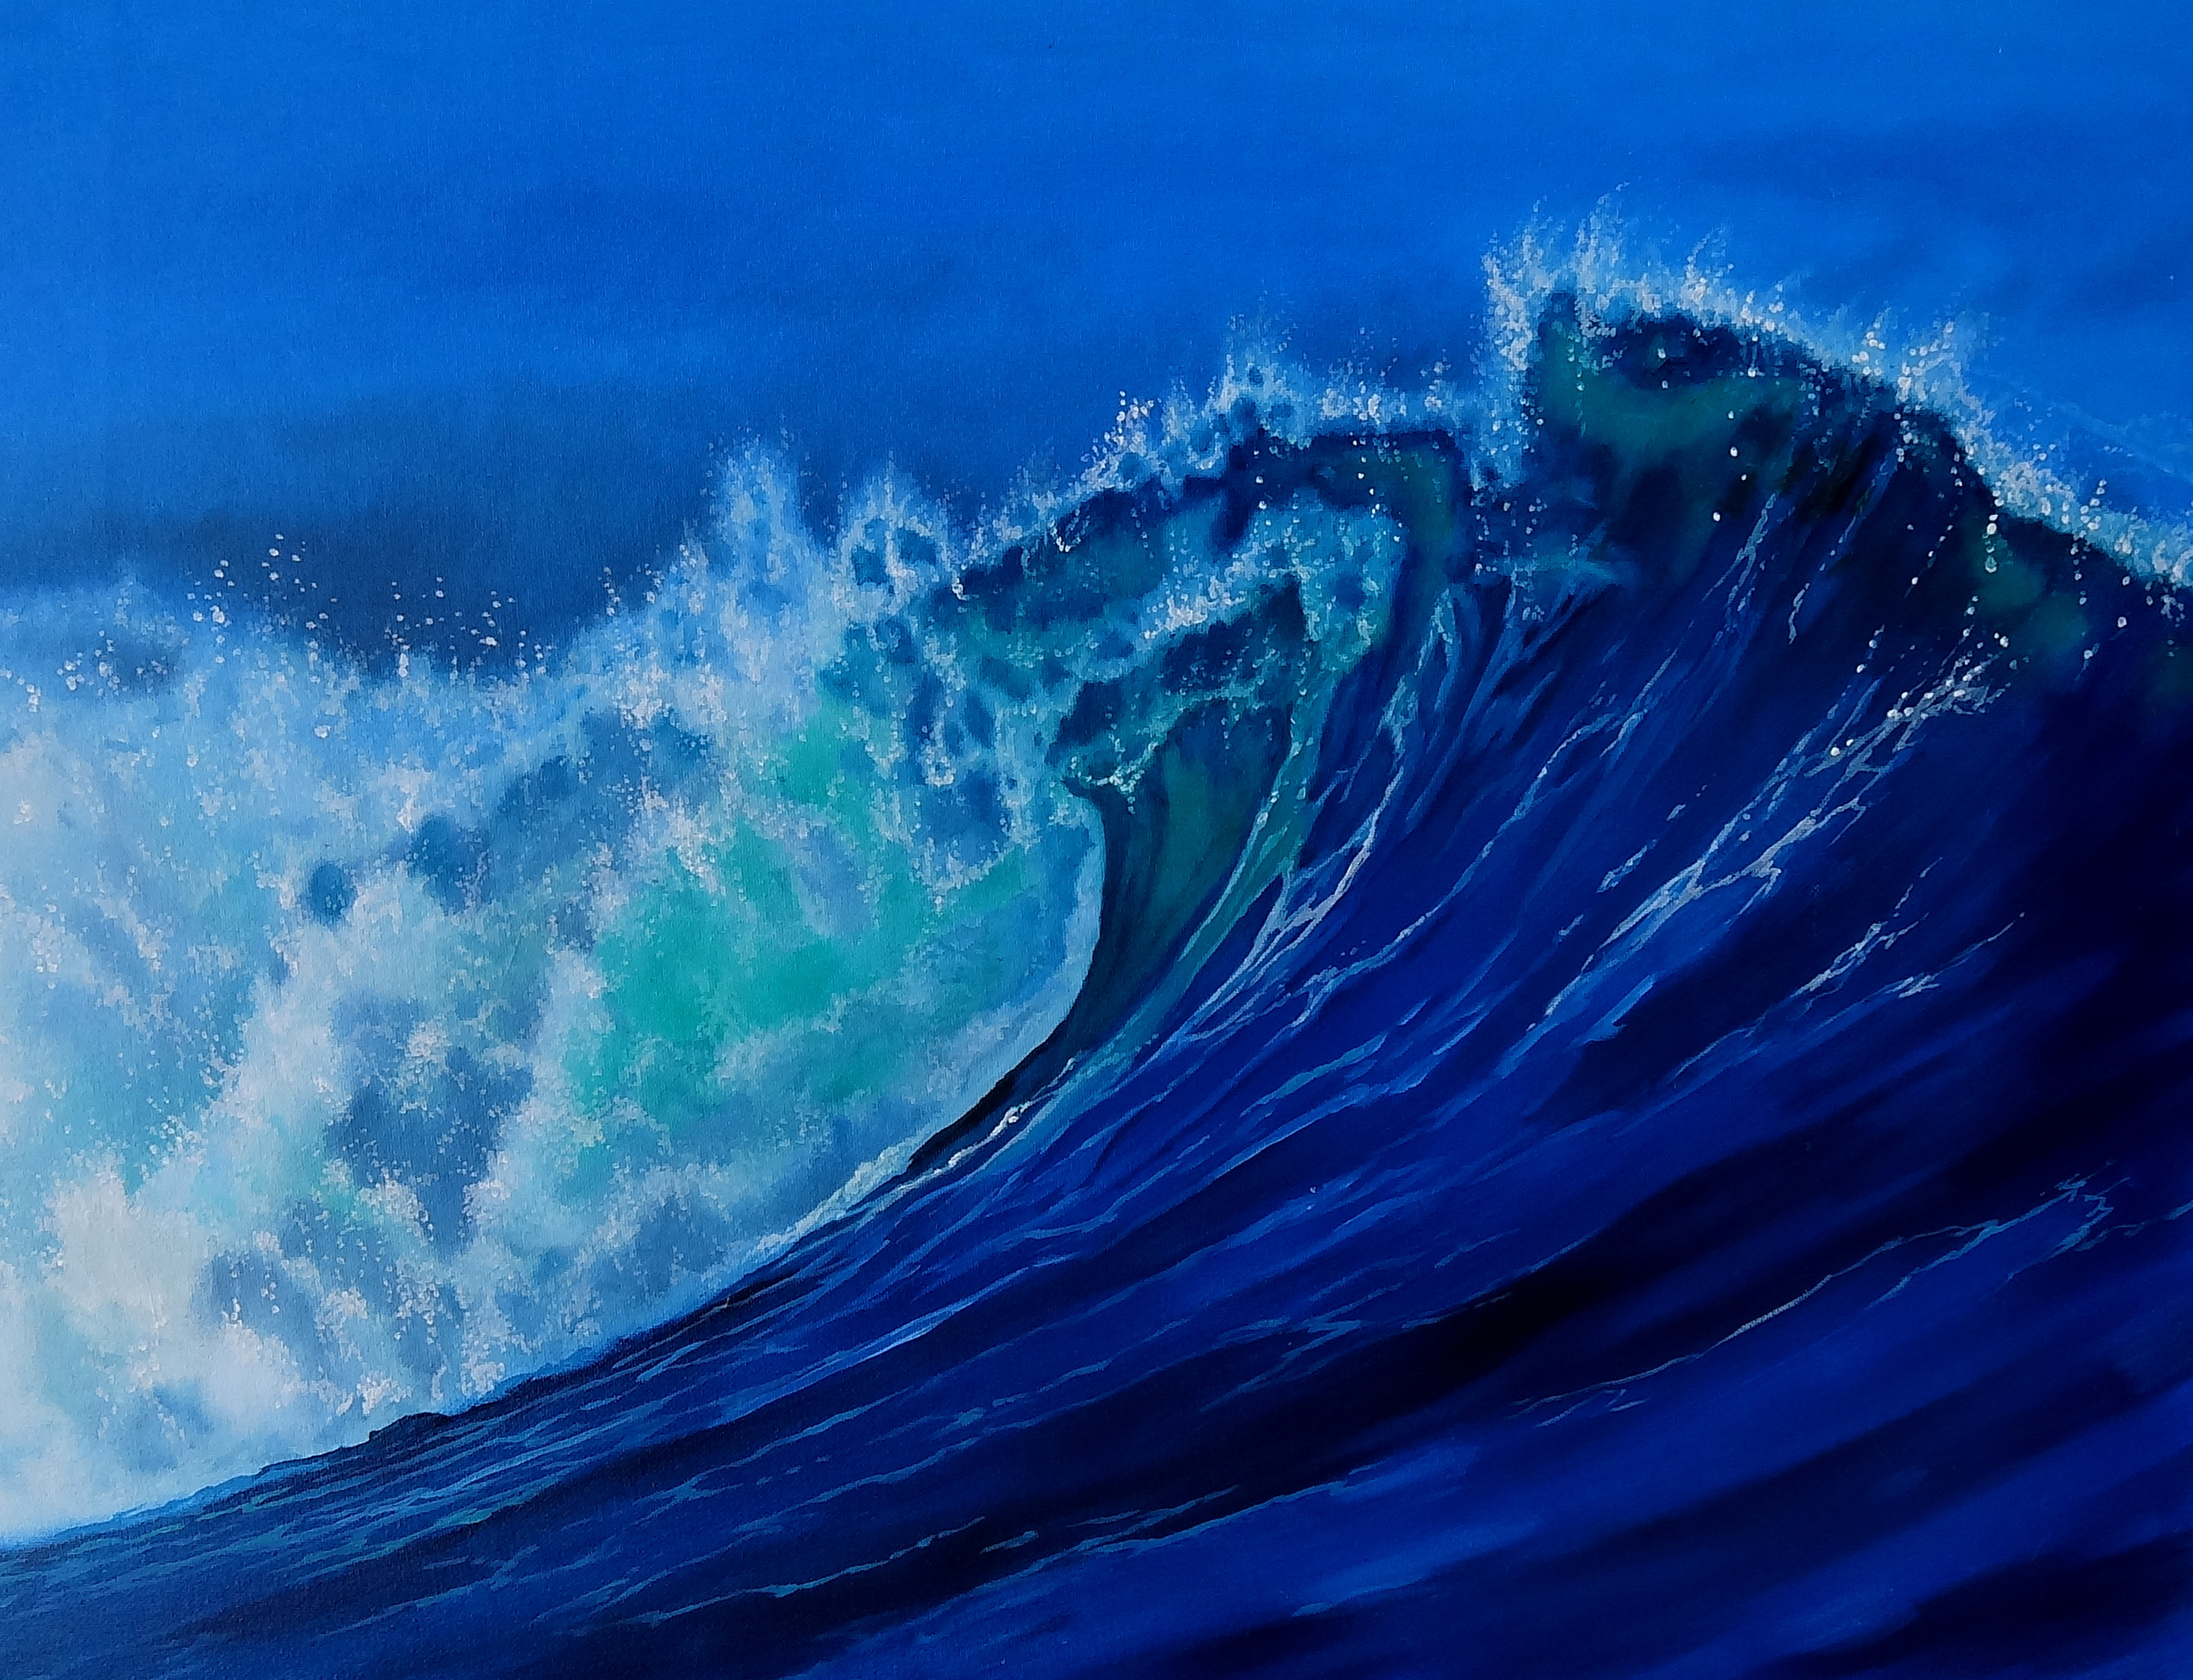 Blue wave wallpapers pictures images - Wave pics wallpaper ...